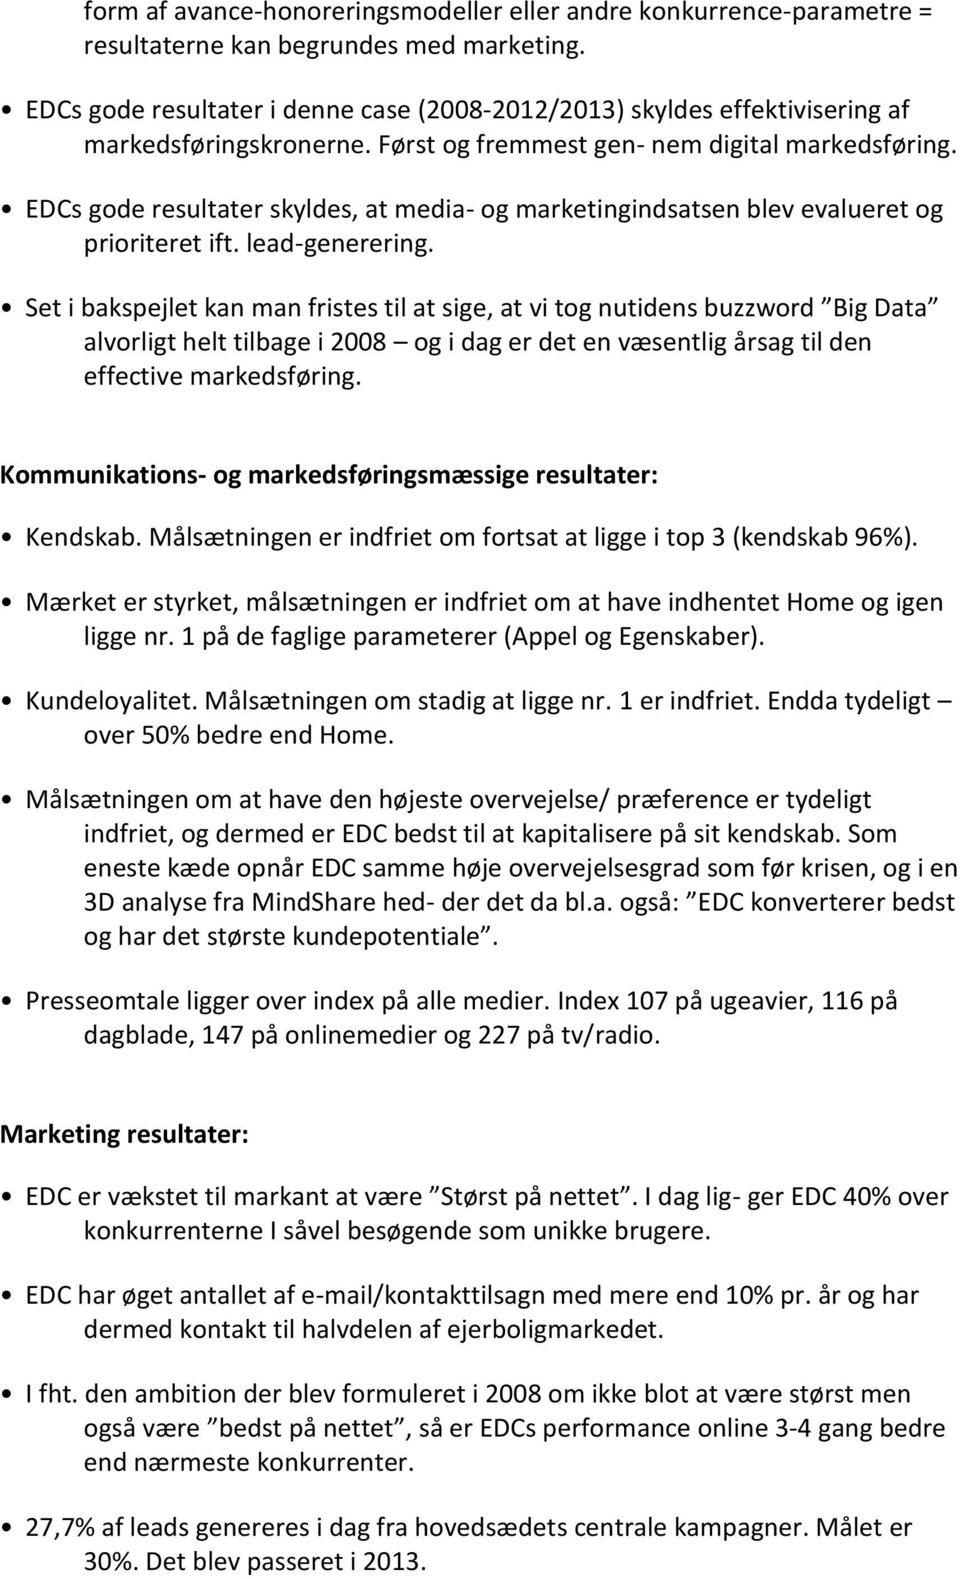 EDCs gode resultater skyldes, at media- og marketingindsatsen blev evalueret og prioriteret ift. lead-generering.